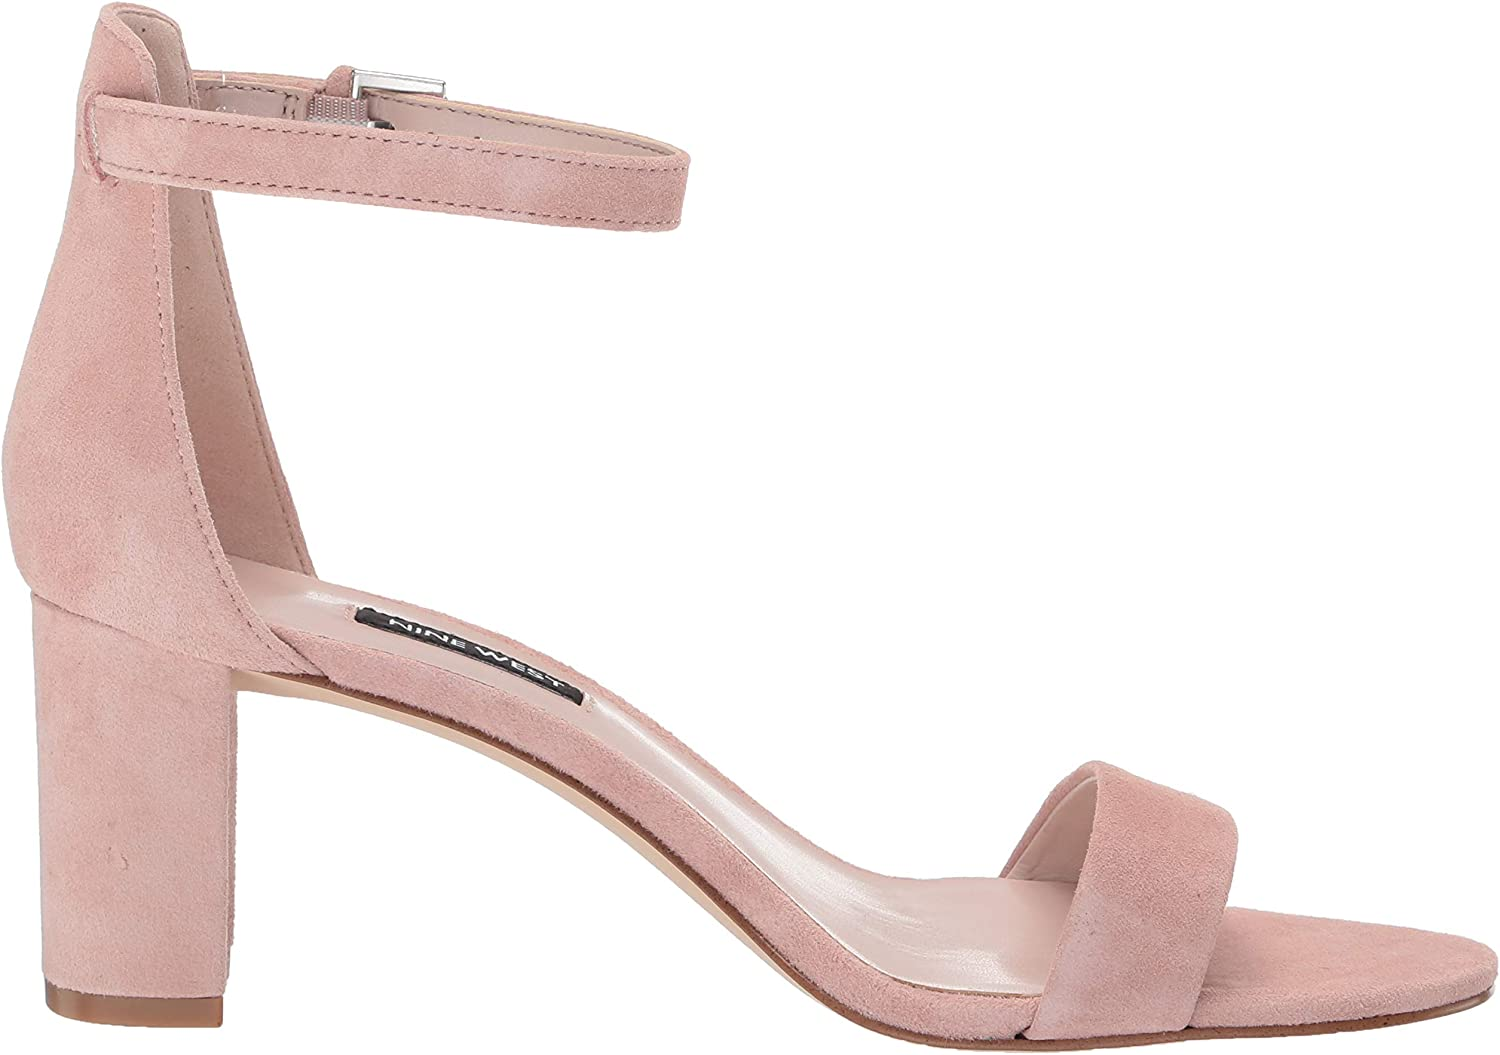 NINE WEST Womens Pruce Cotton Open Toe Formal Ankle Strap Sandals Rosa Moderno